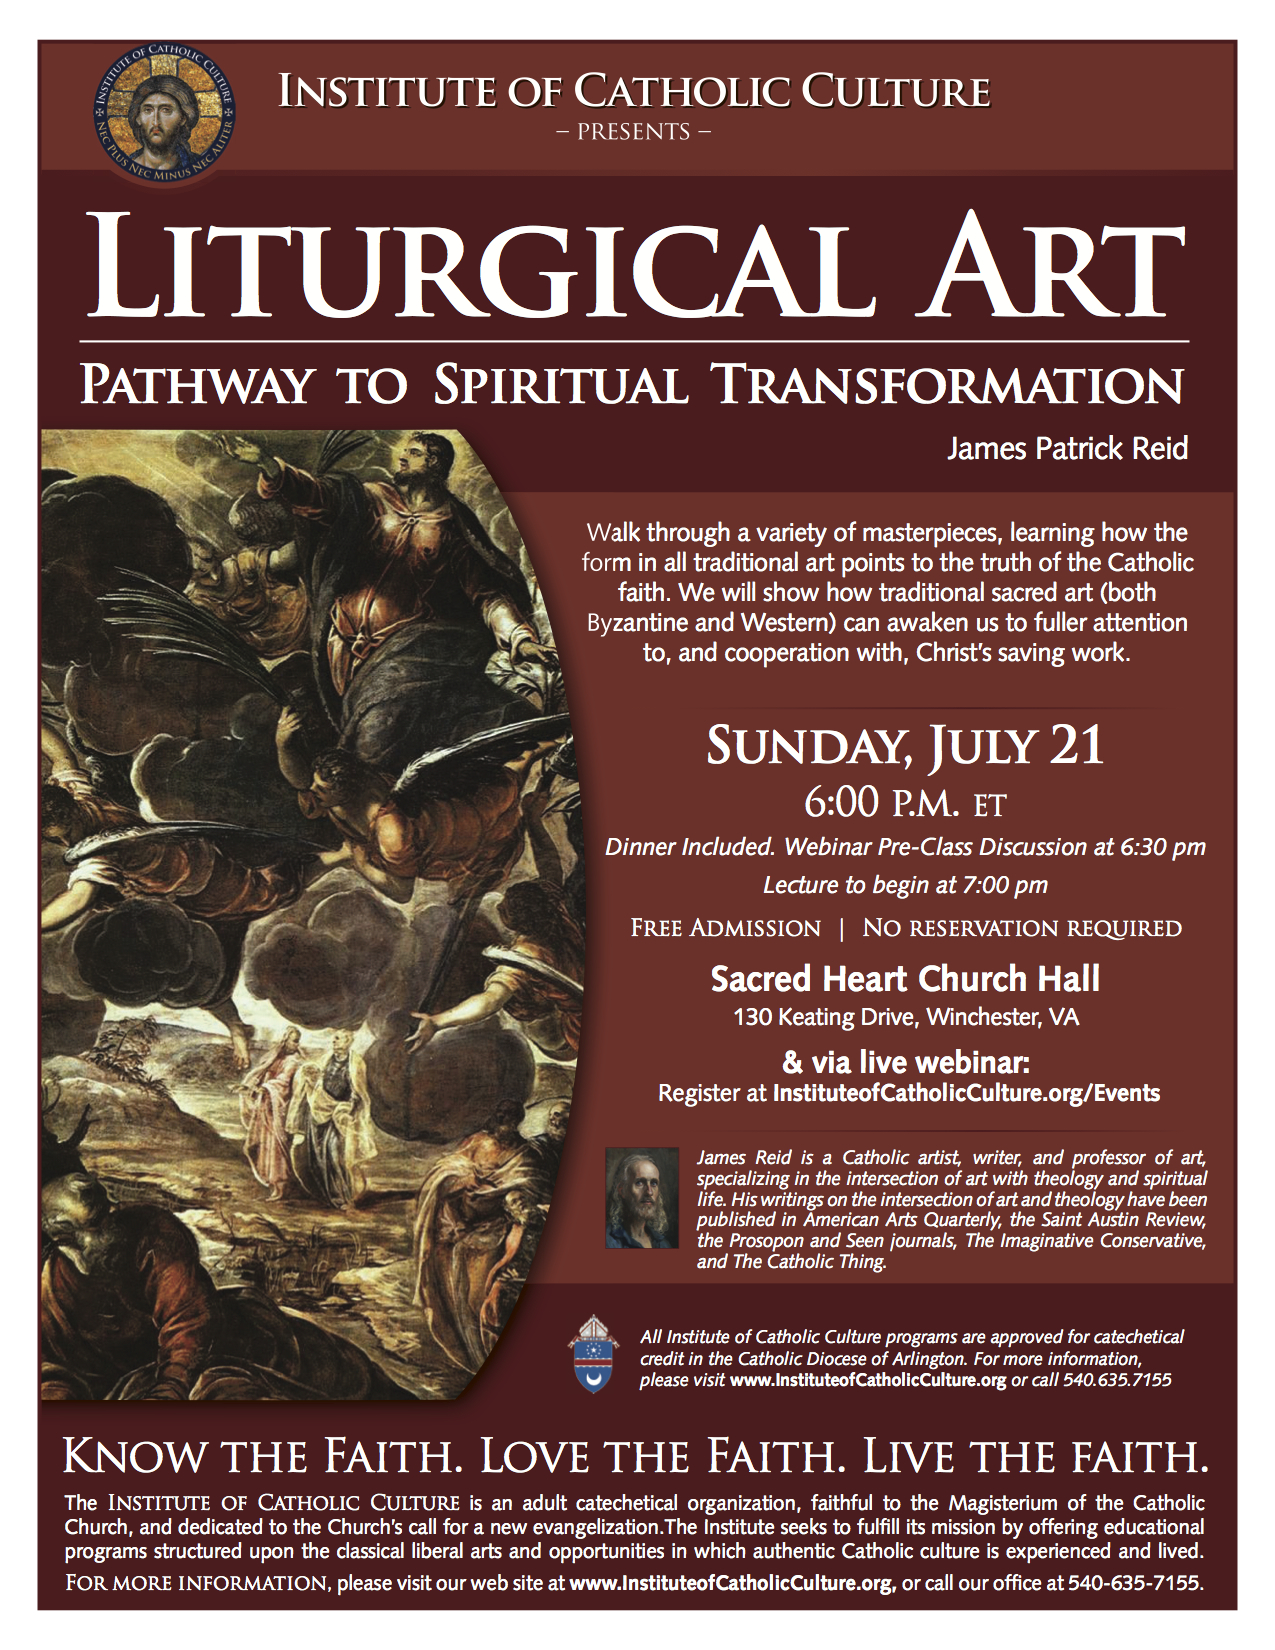 LiturgicalArt_flyer (1) copy.jpg